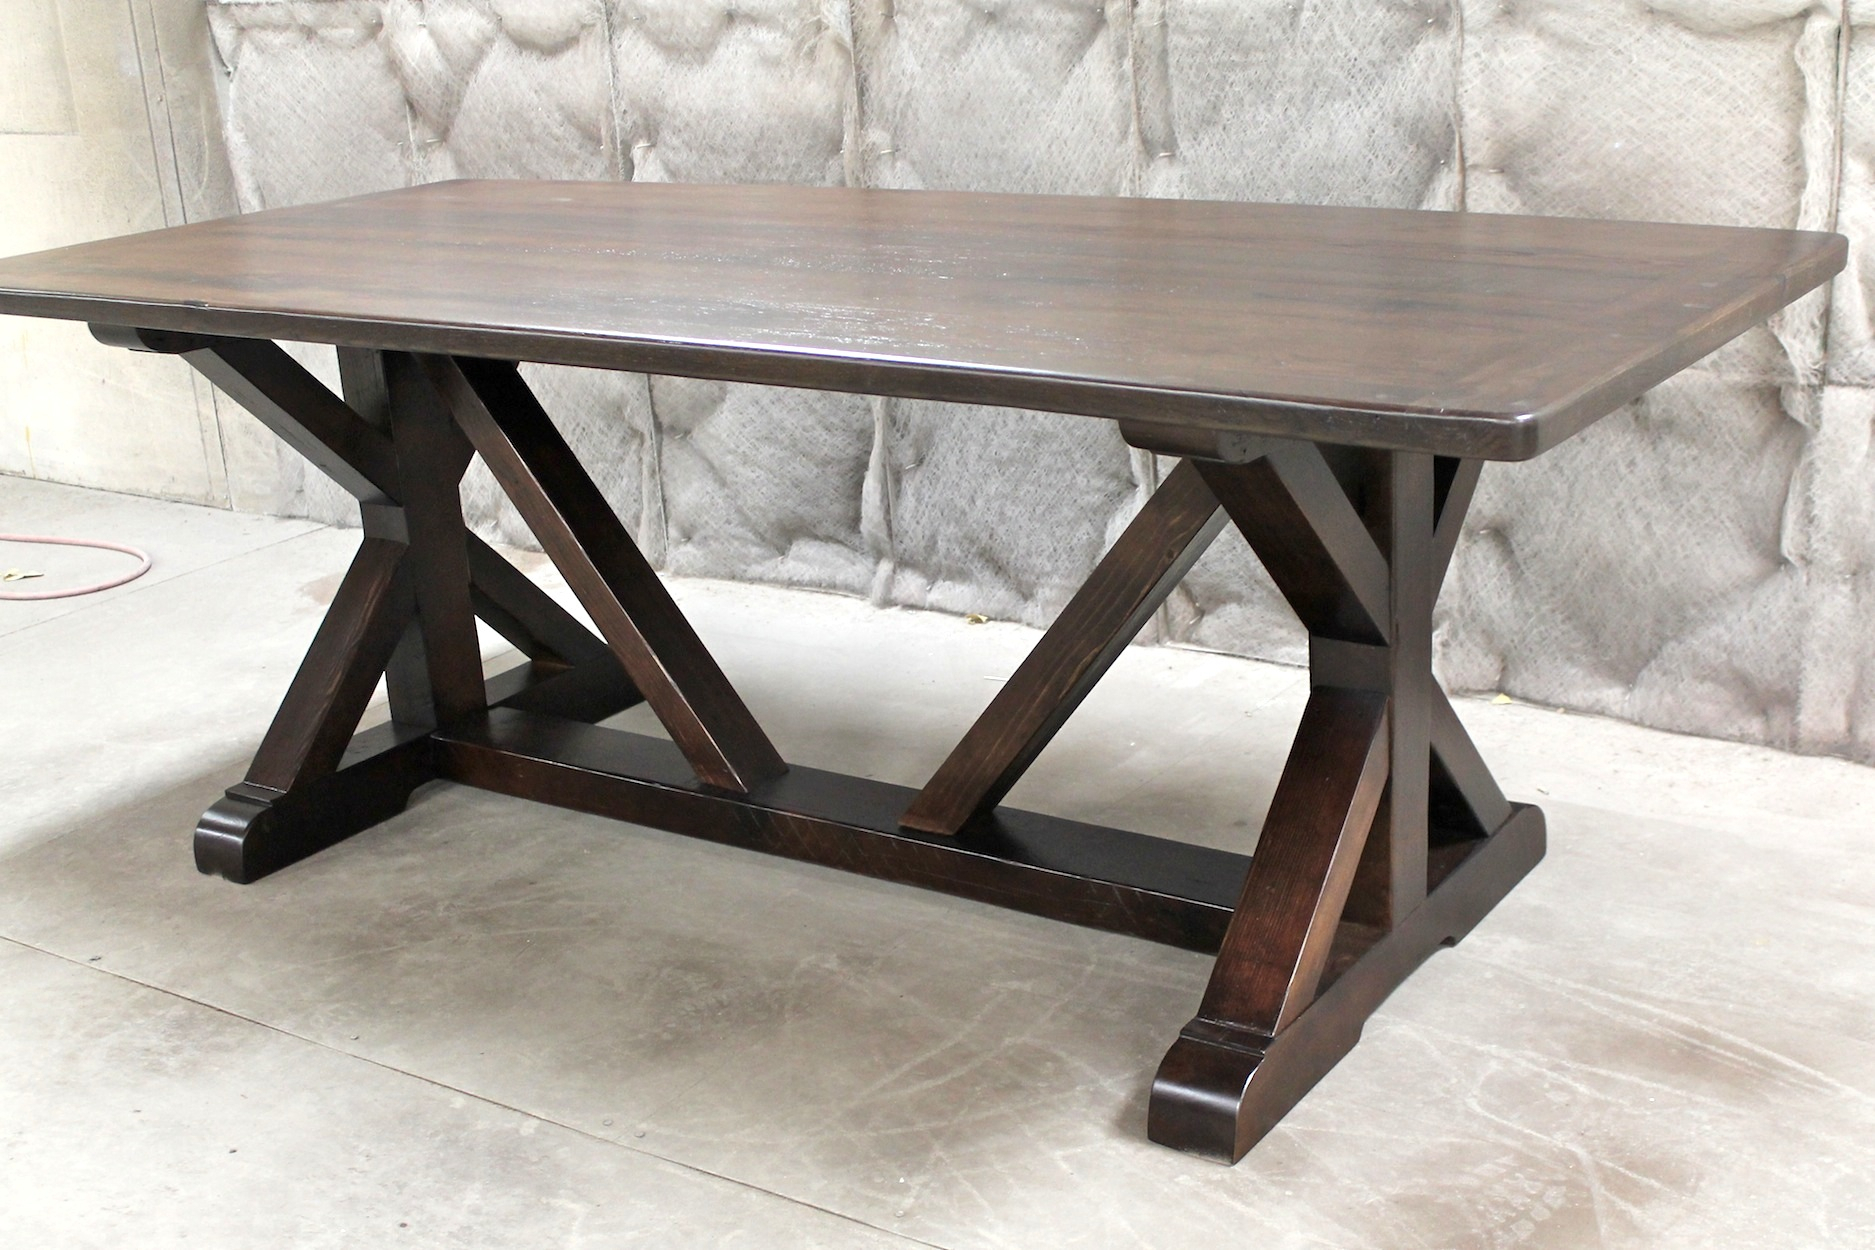 Restoration Hardware Inspired X Base Trestle Table With Regard To Most Popular Kara Trestle Dining Tables (View 11 of 15)